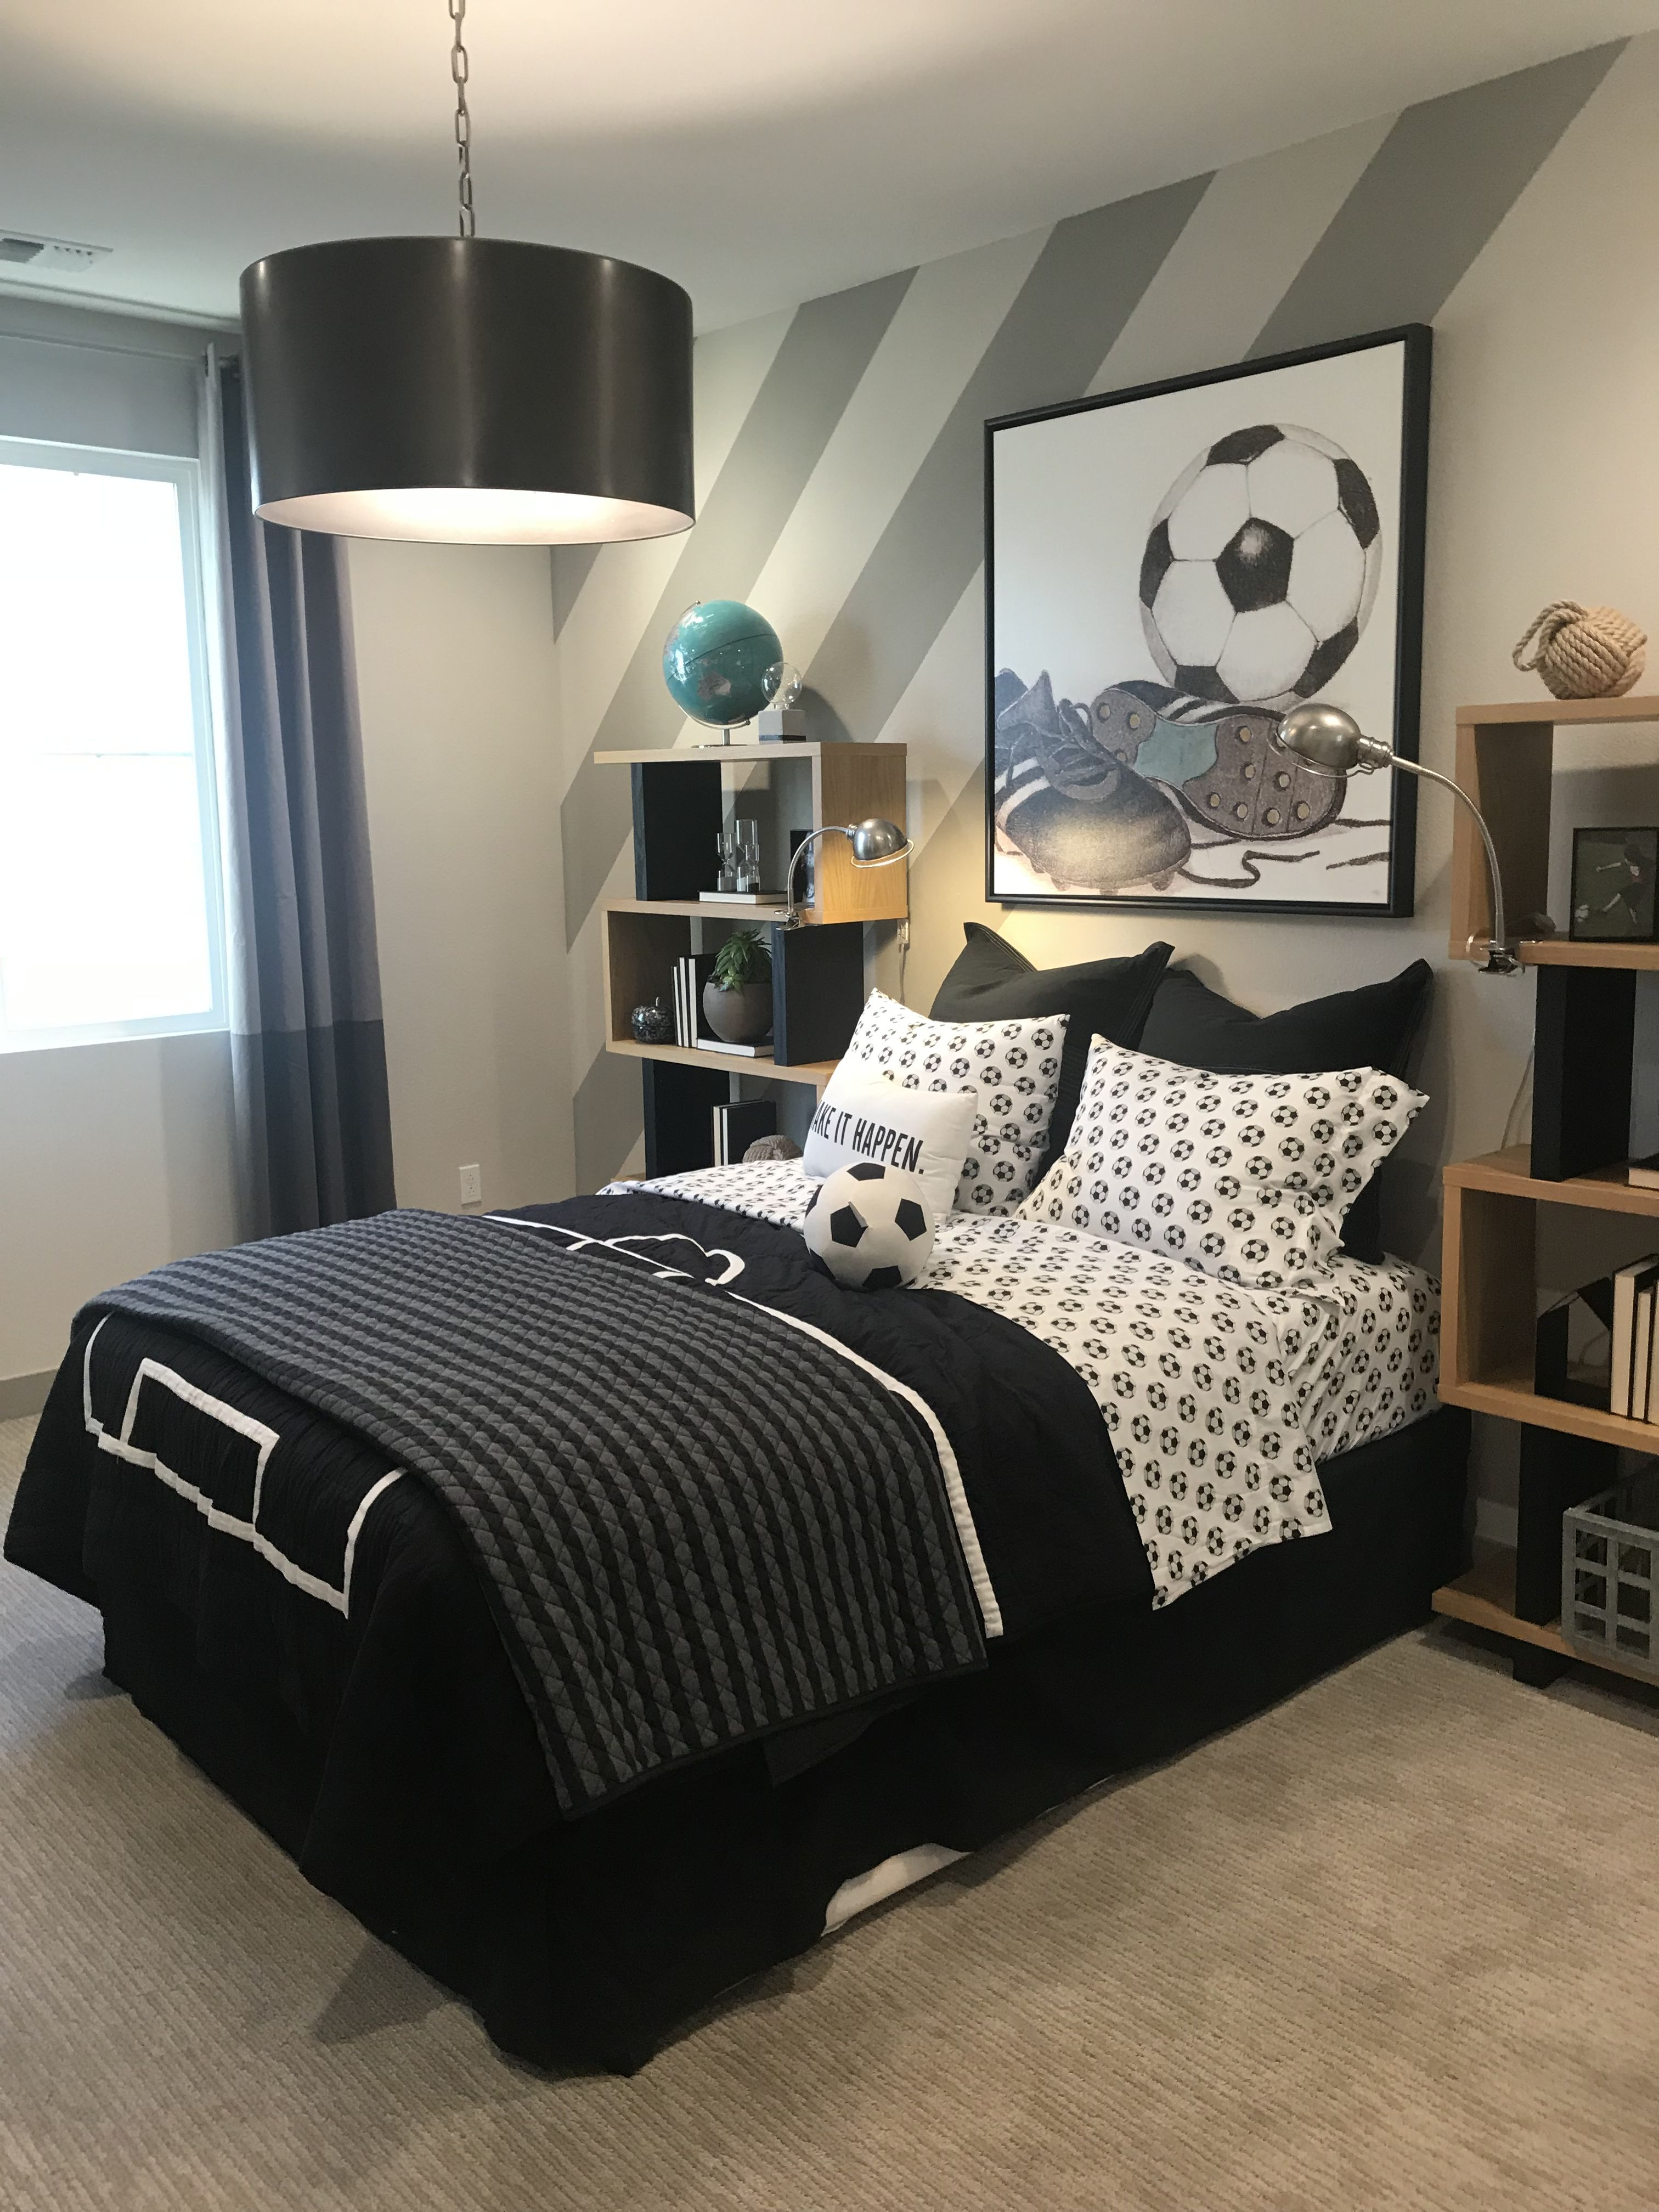 Create The Design Of Your Barndominium Small Bedroom Or Let